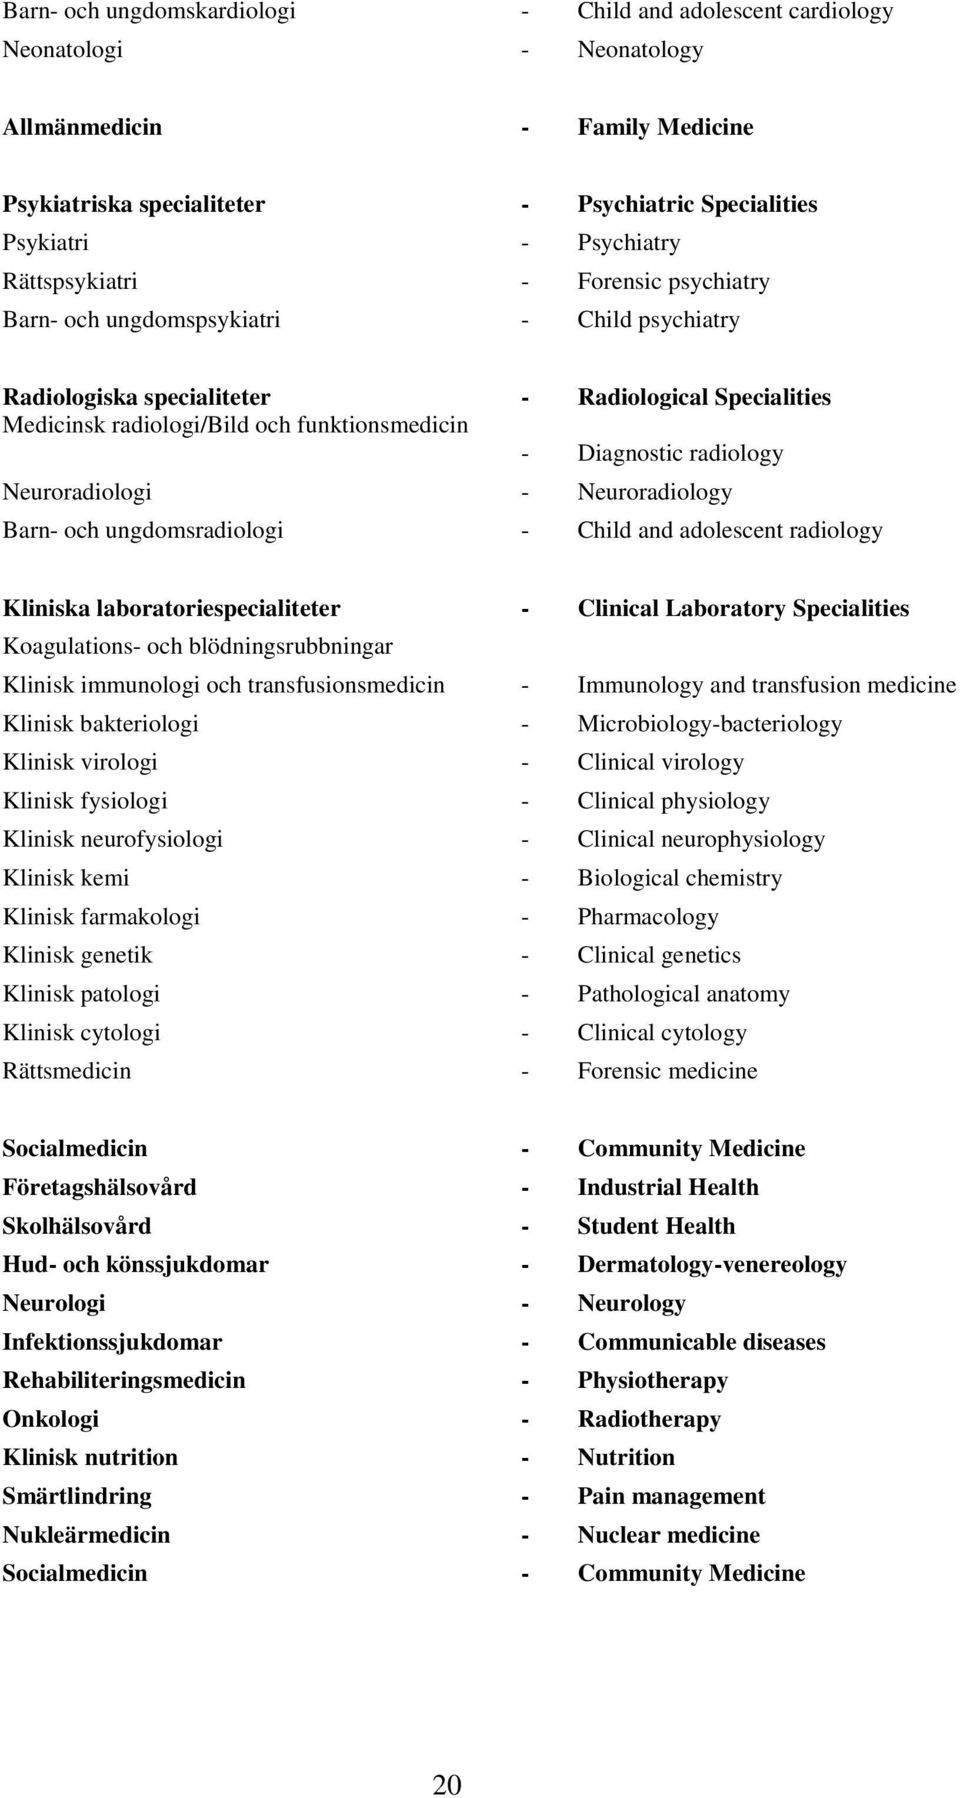 radiology Neuroradiologi - Neuroradiology Barn- och ungdomsradiologi - Child and adolescent radiology Kliniska laboratoriespecialiteter - Clinical Laboratory Specialities Koagulations- och